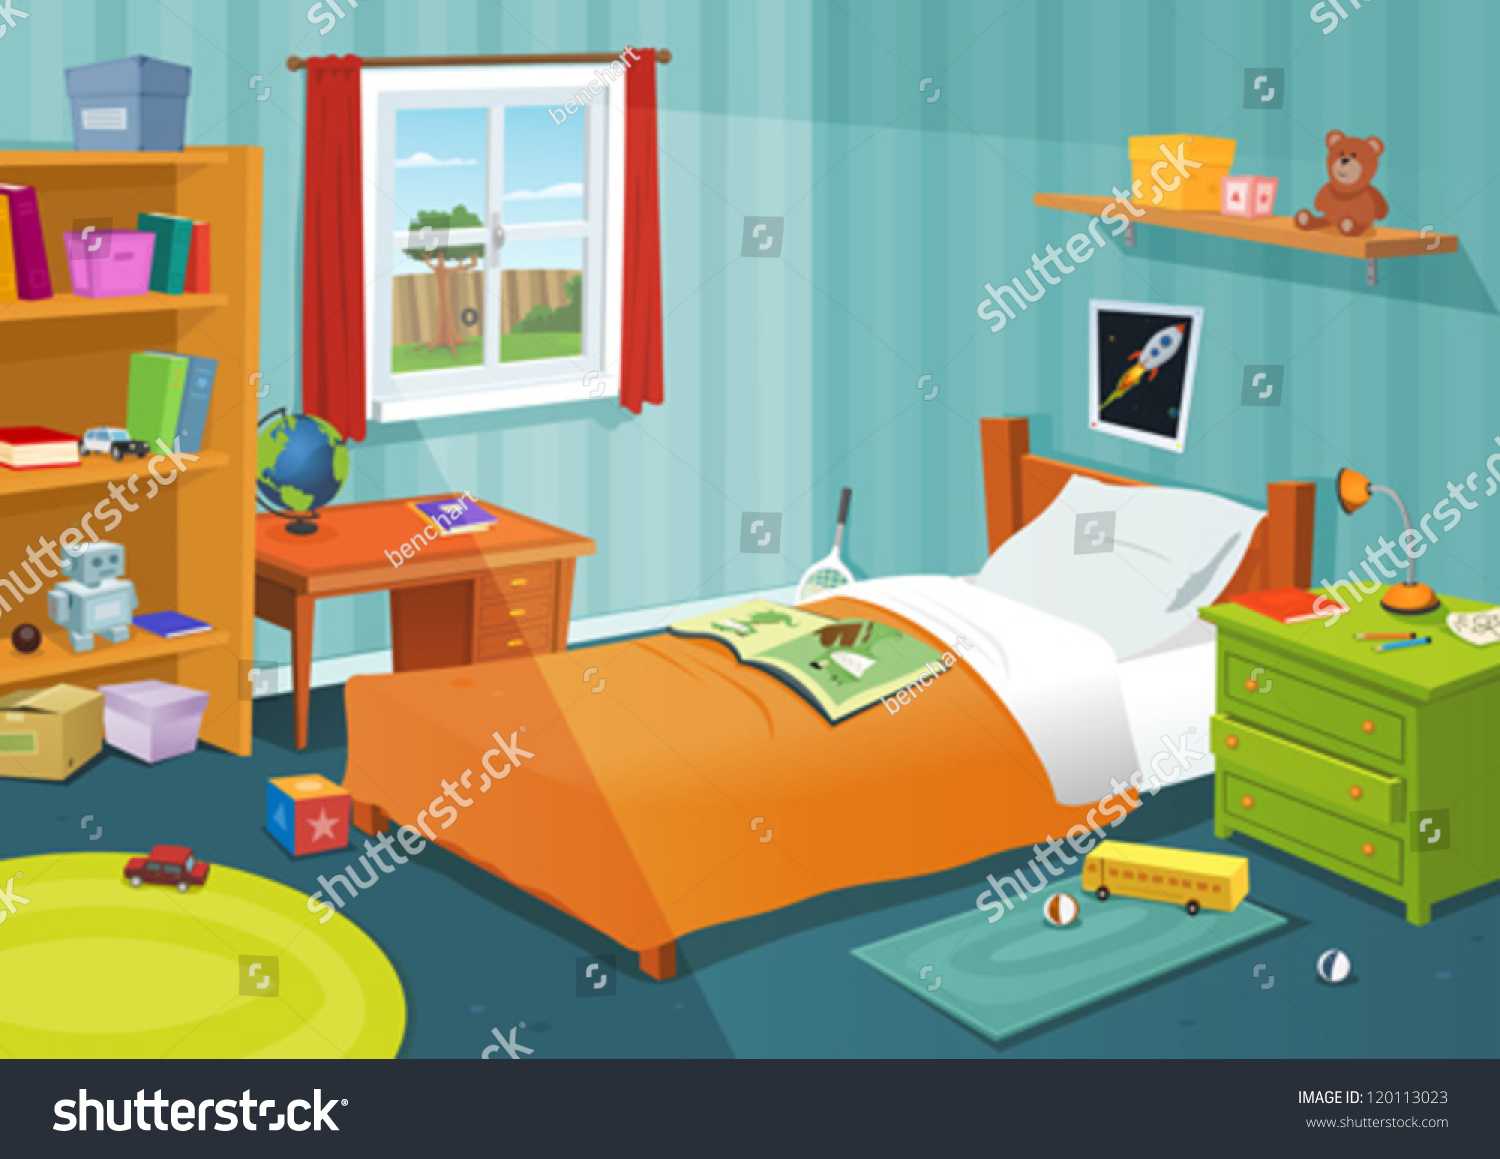 Some Kid Bedroom  Illustration of a cartoon children bedroom with boy or  girl lifestyle elements. Some Kid Bedroom Illustration Cartoon Children Stock Vector